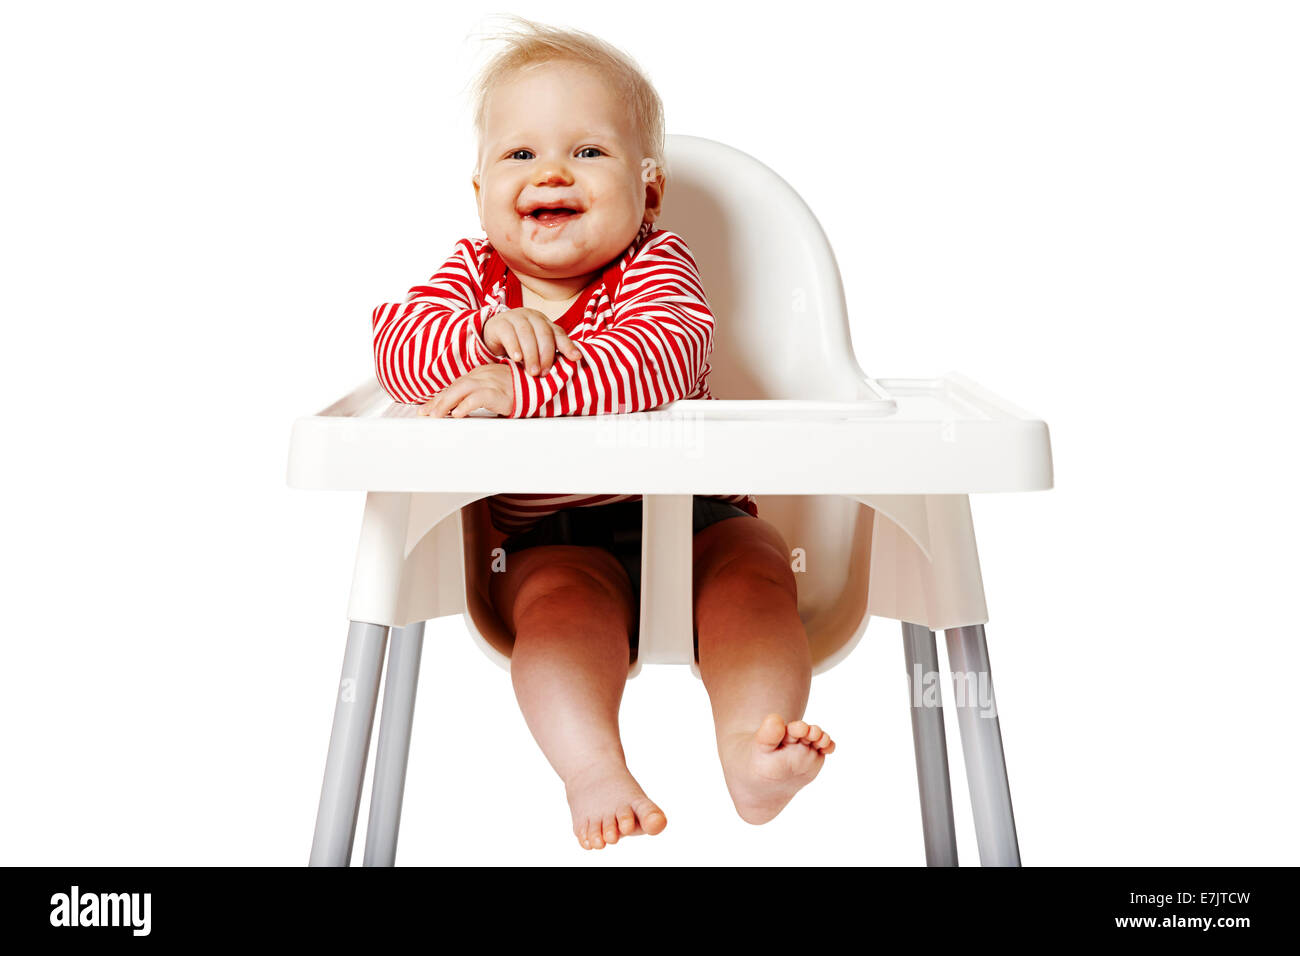 Portrait of baby with dirty mouth after eating. Baby sitting on chair. - Stock Image